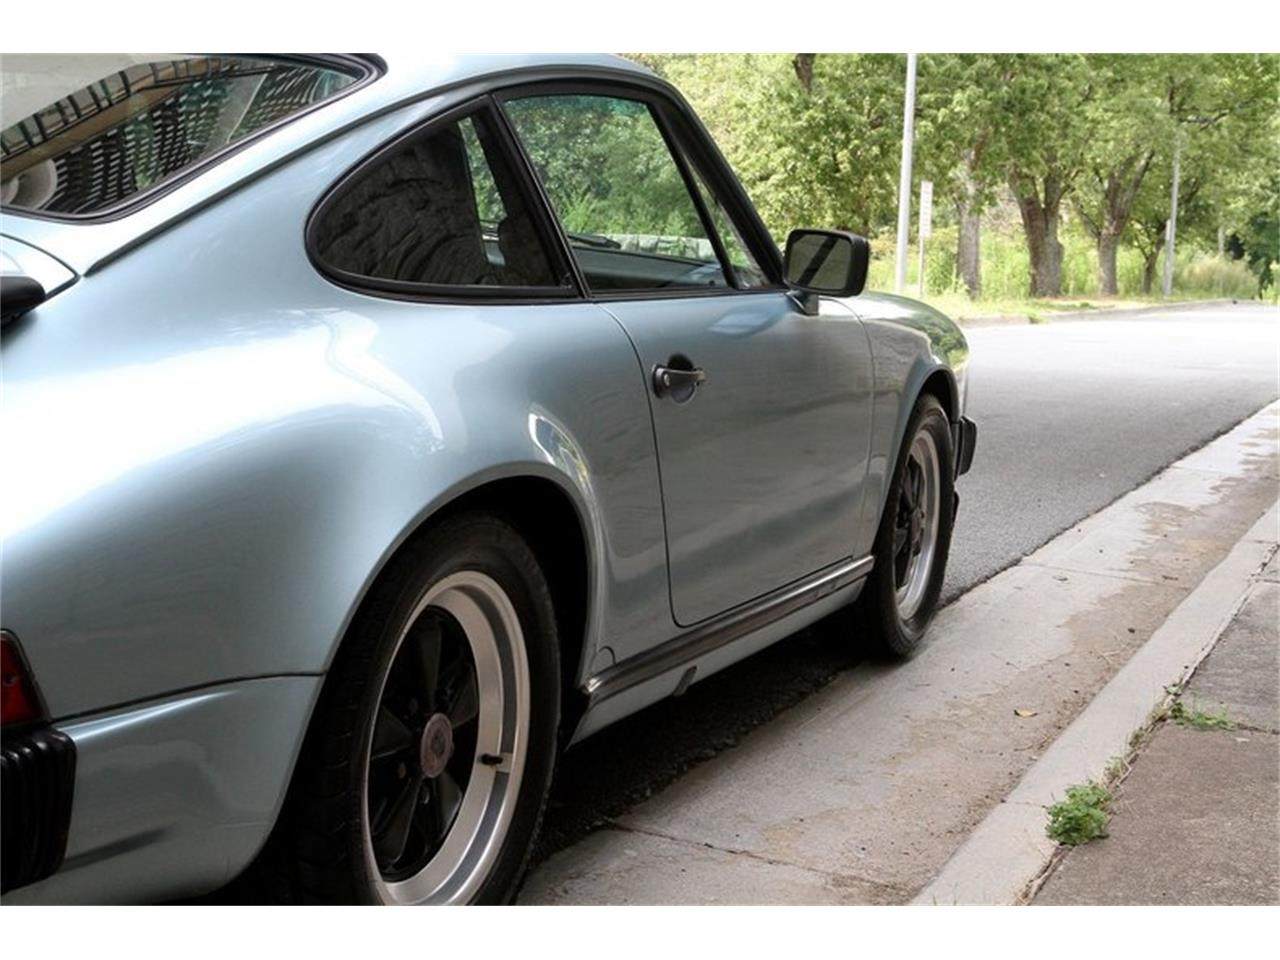 Large Picture of 1987 Porsche 911 located in Georgia Offered by Motorcar Studio - OGK8